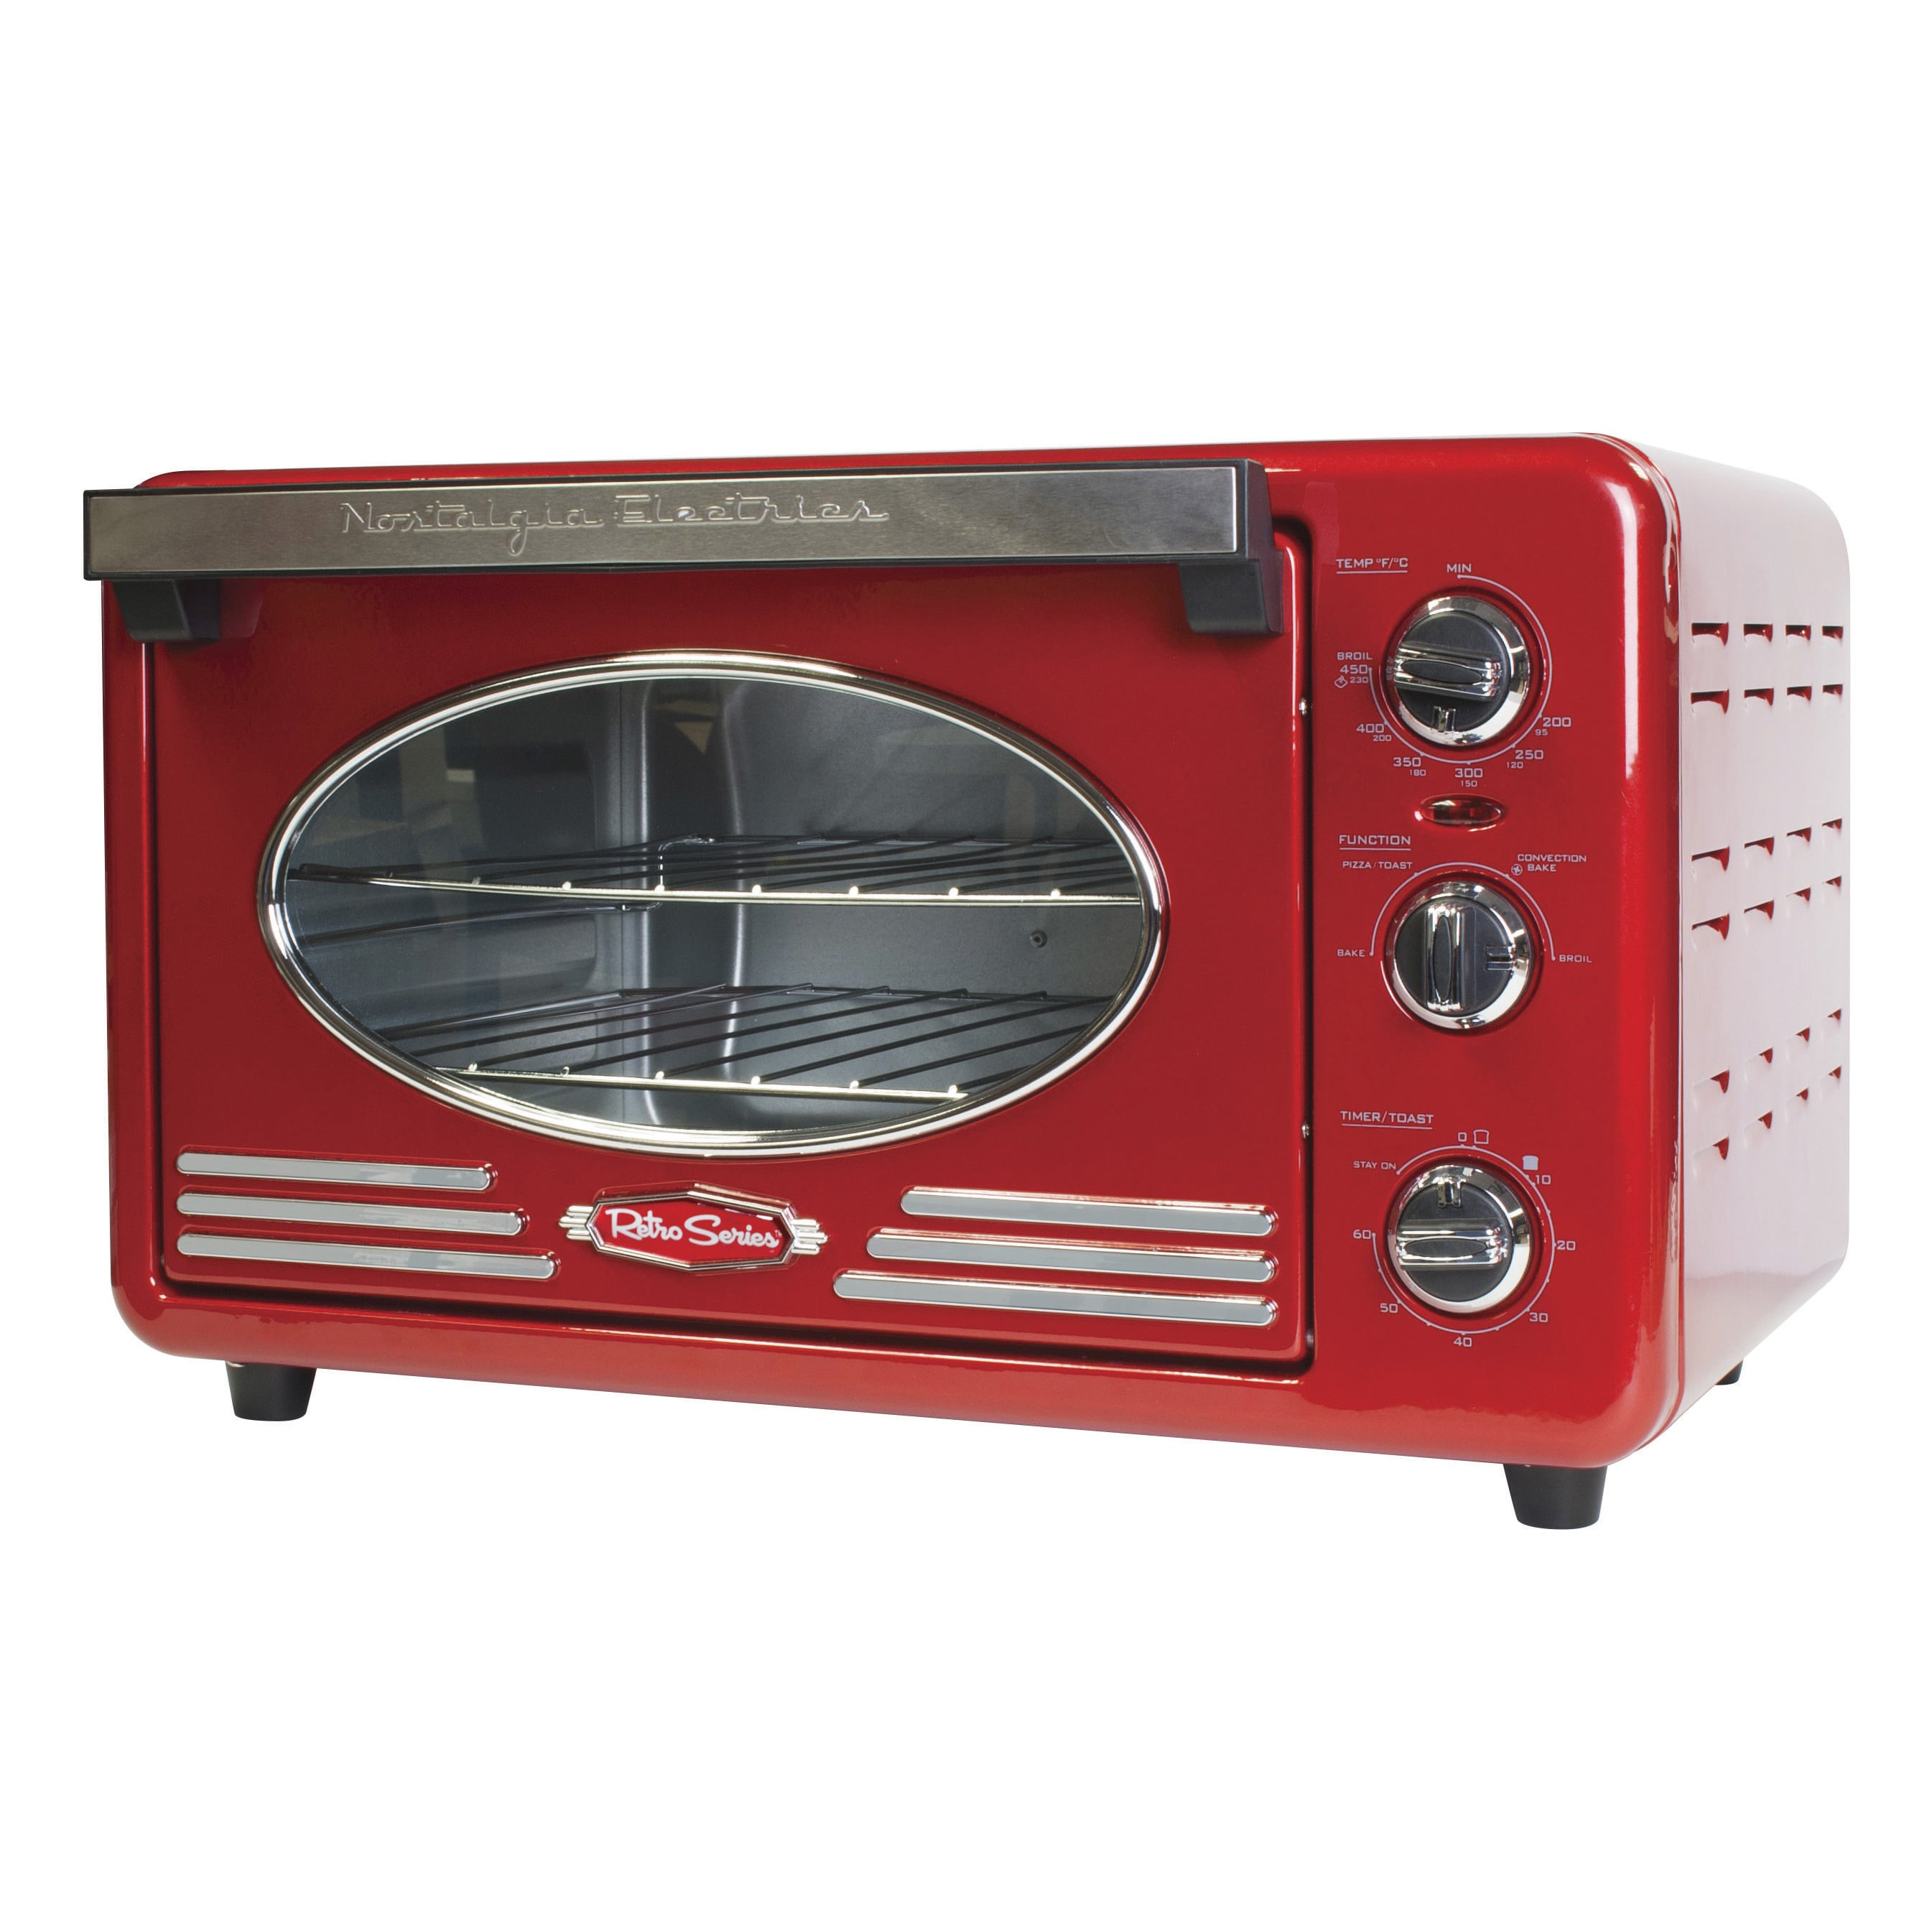 shop oven international protrade and toaster ovens decker black convection